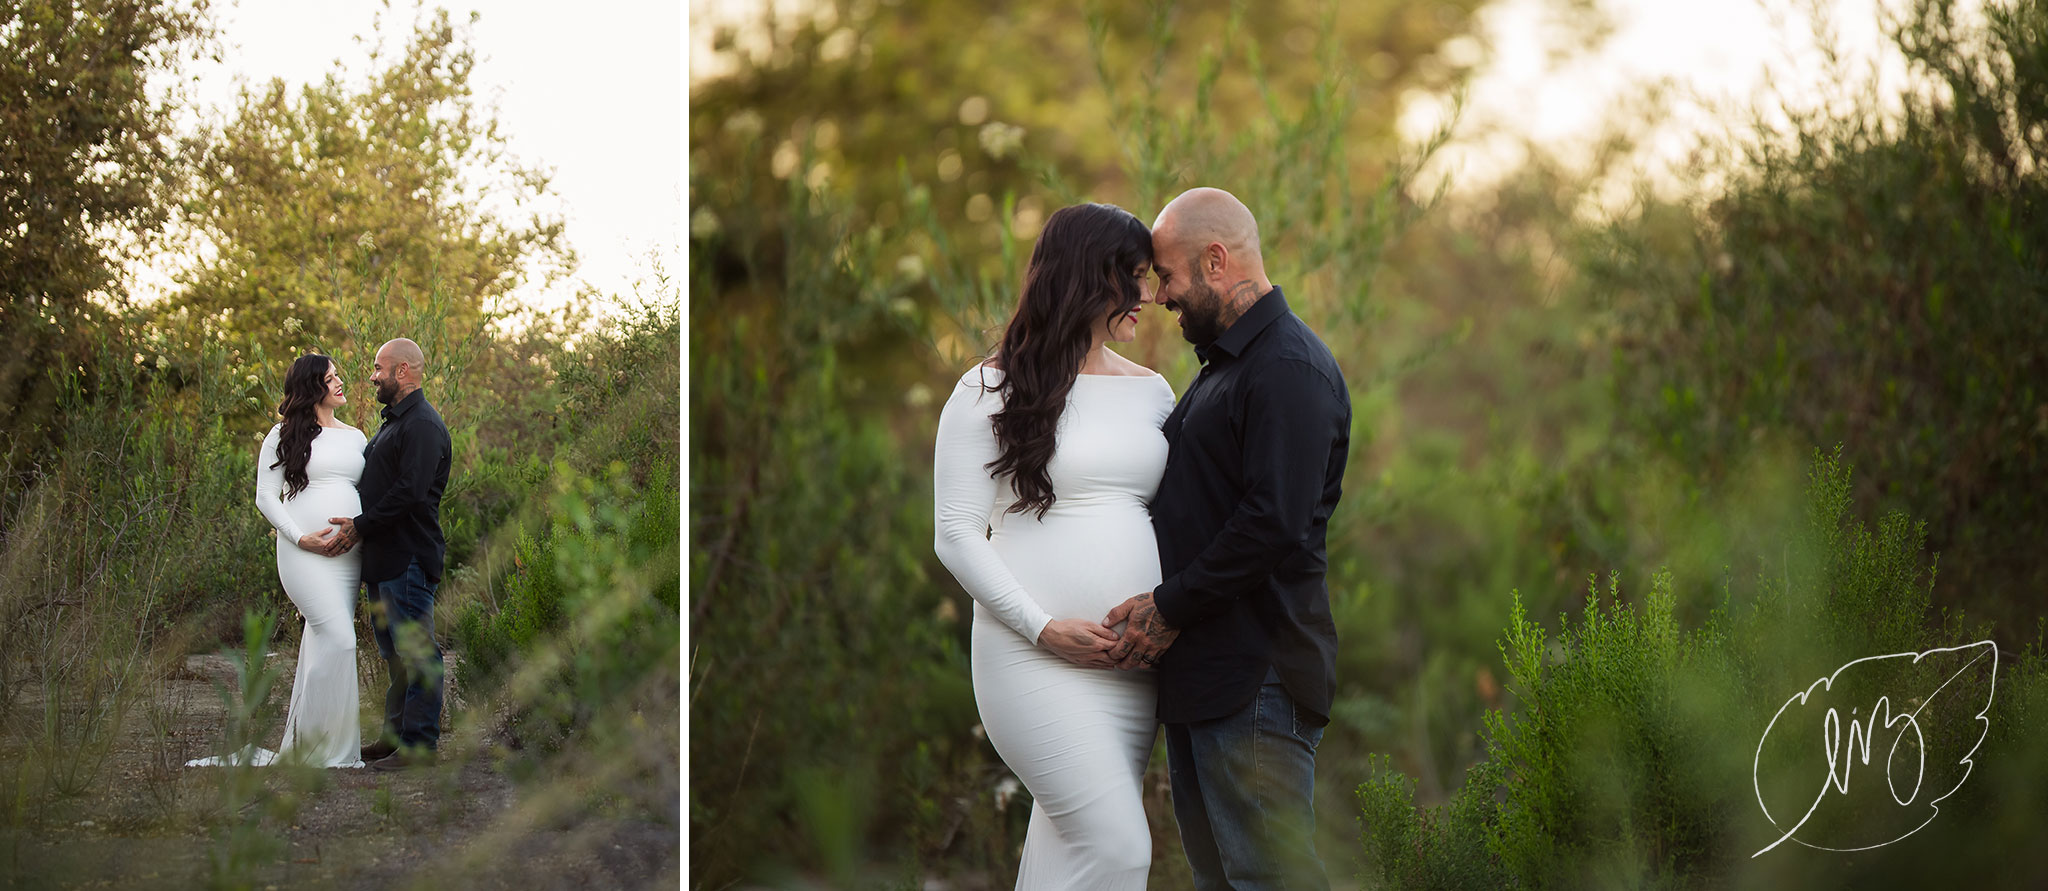 Inland_Empire_Maternity_Photographer_12.jpg